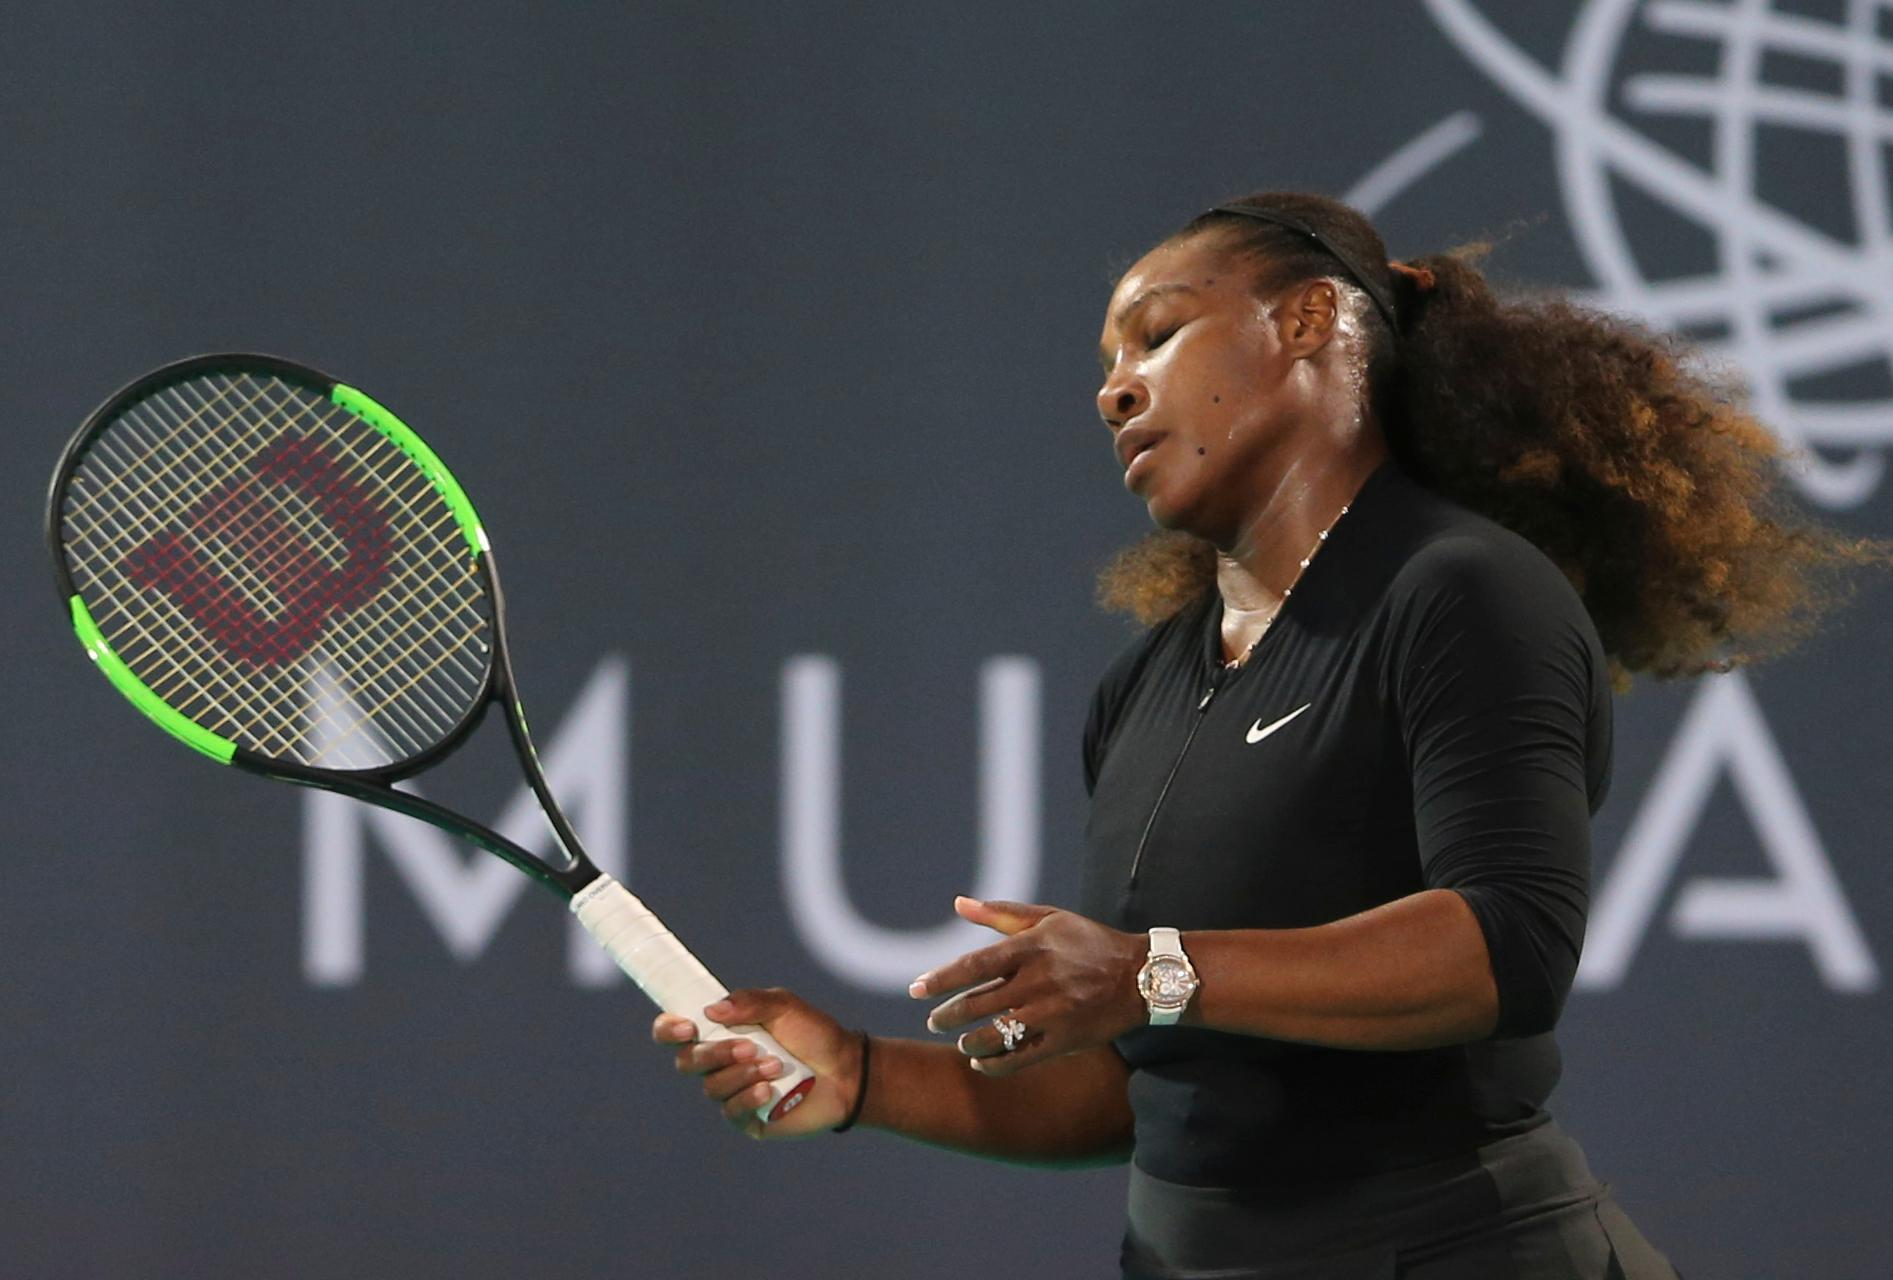 Serena Williams, of the U.S., reacts in an exhibition match against Jelena Ostapenko, of Latvia, during the final day of the Mubadala World Tennis Championship in Abu Dhabi, United Arab Emirates, Saturday, Dec. 30, 2017. (AP Photo/Kamran Jebreili)